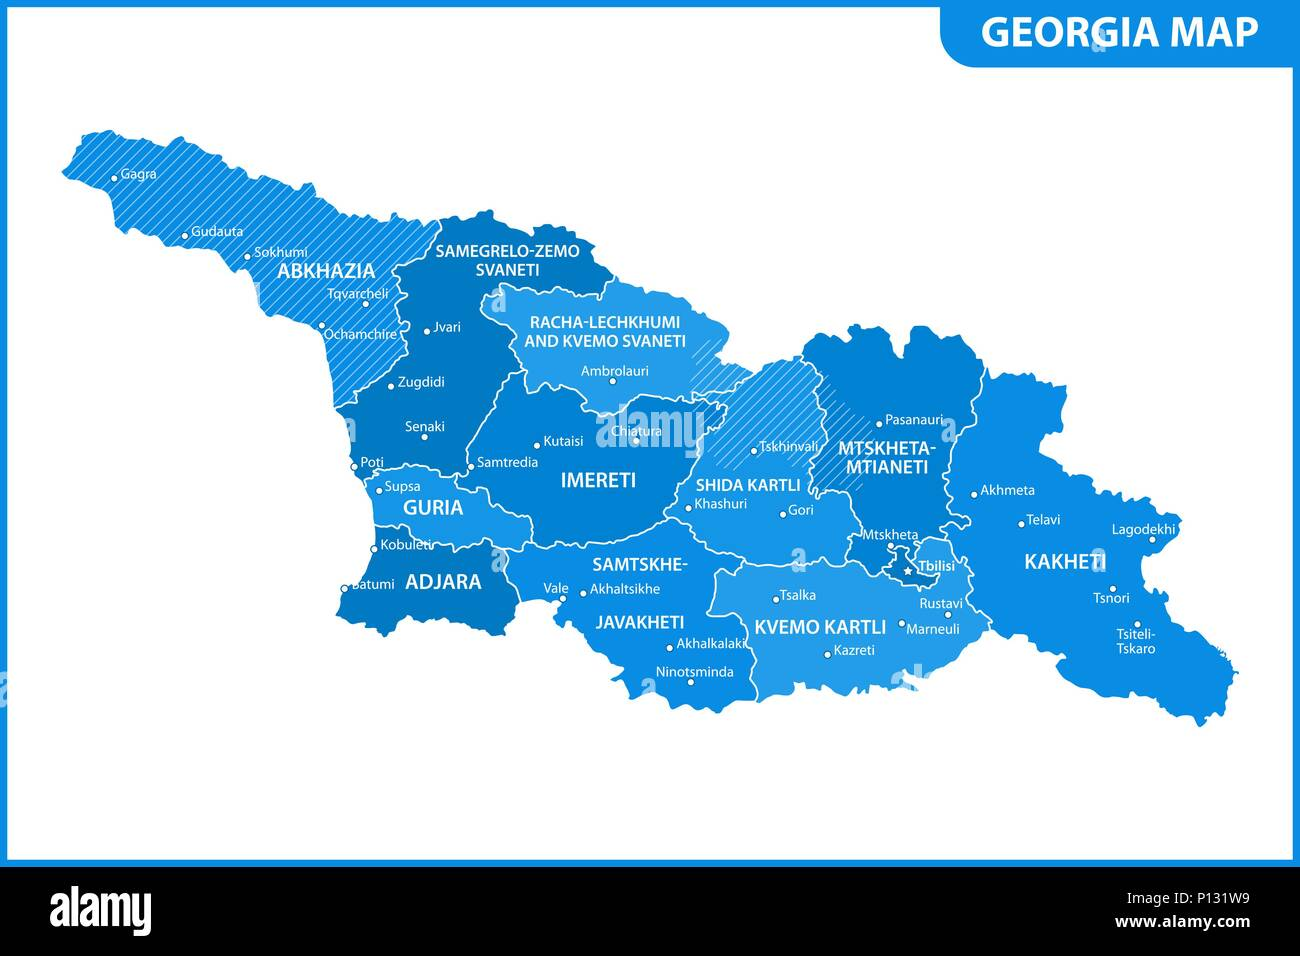 Map Of Georgia With Capital.The Detailed Map Of The Georgia With Regions Or States And Cities